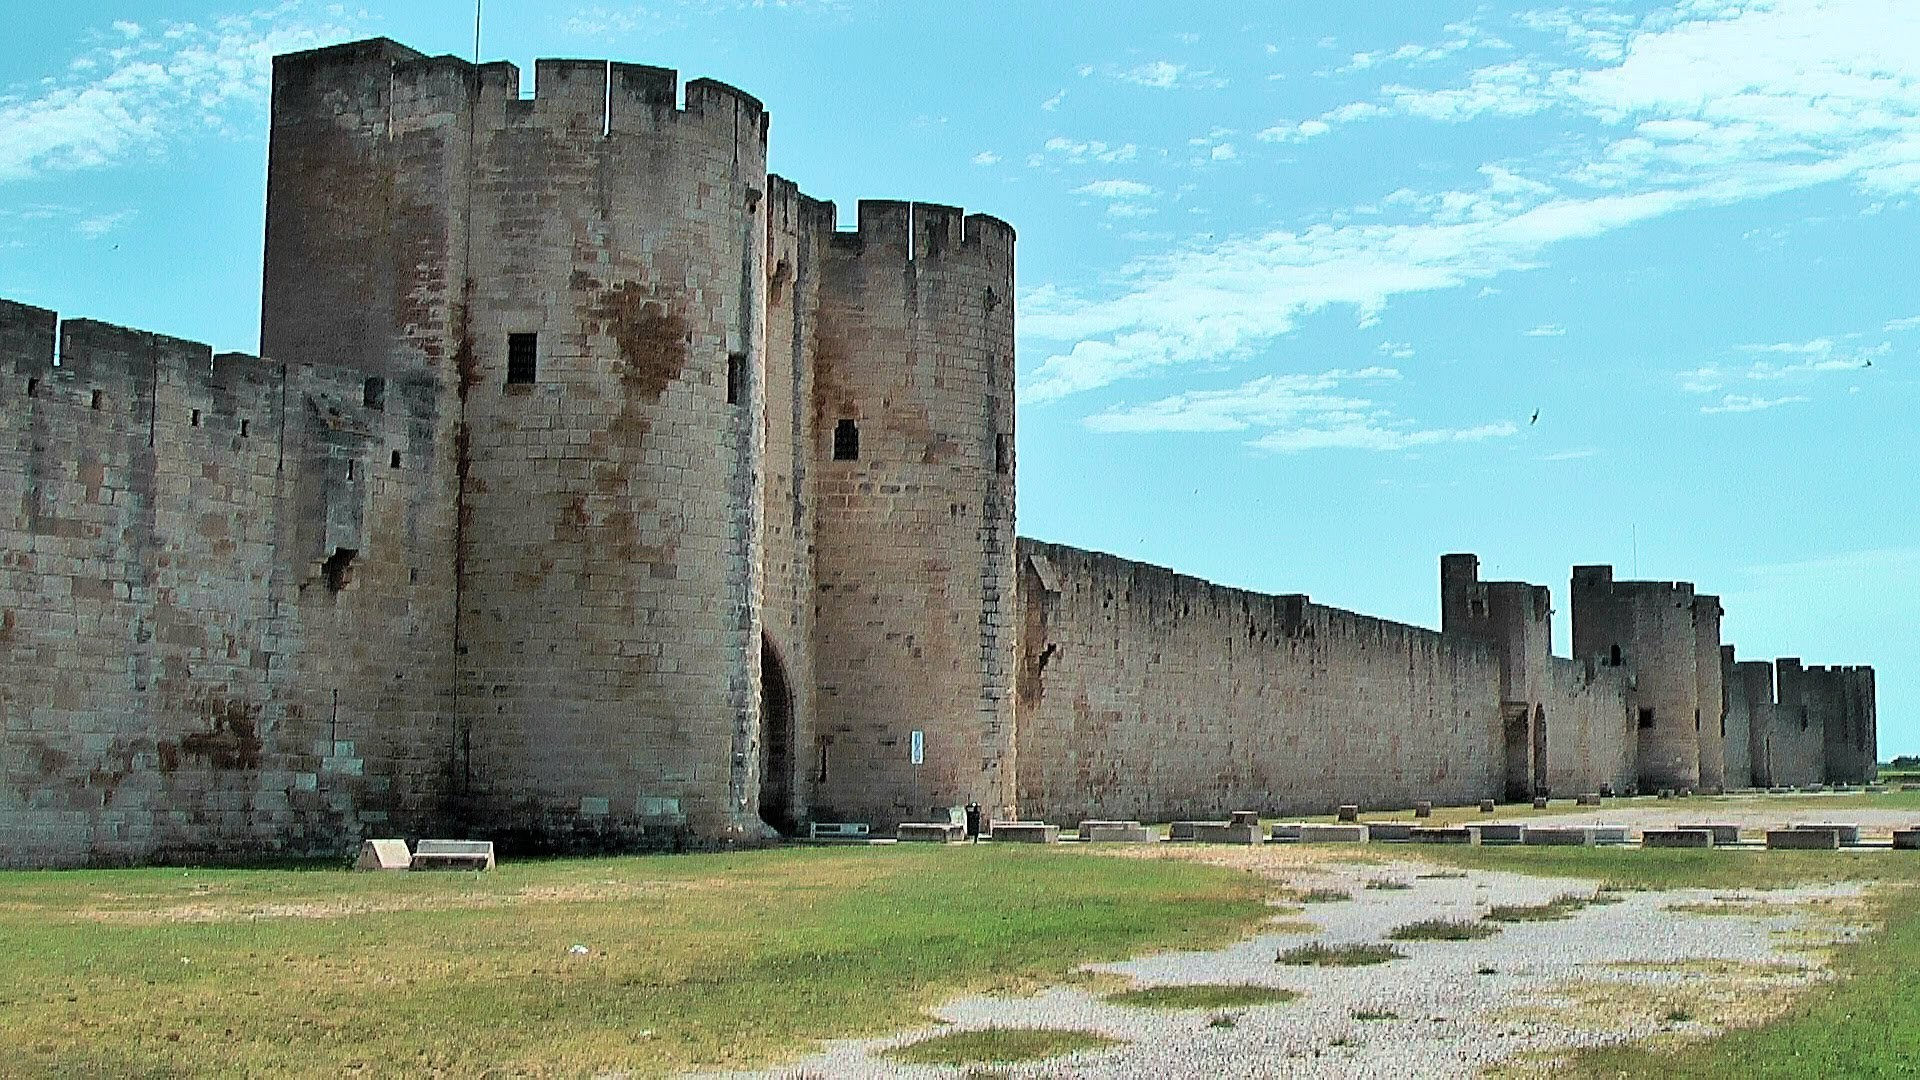 Impregnable Walls Of The Old Castle Wallpapers And Images